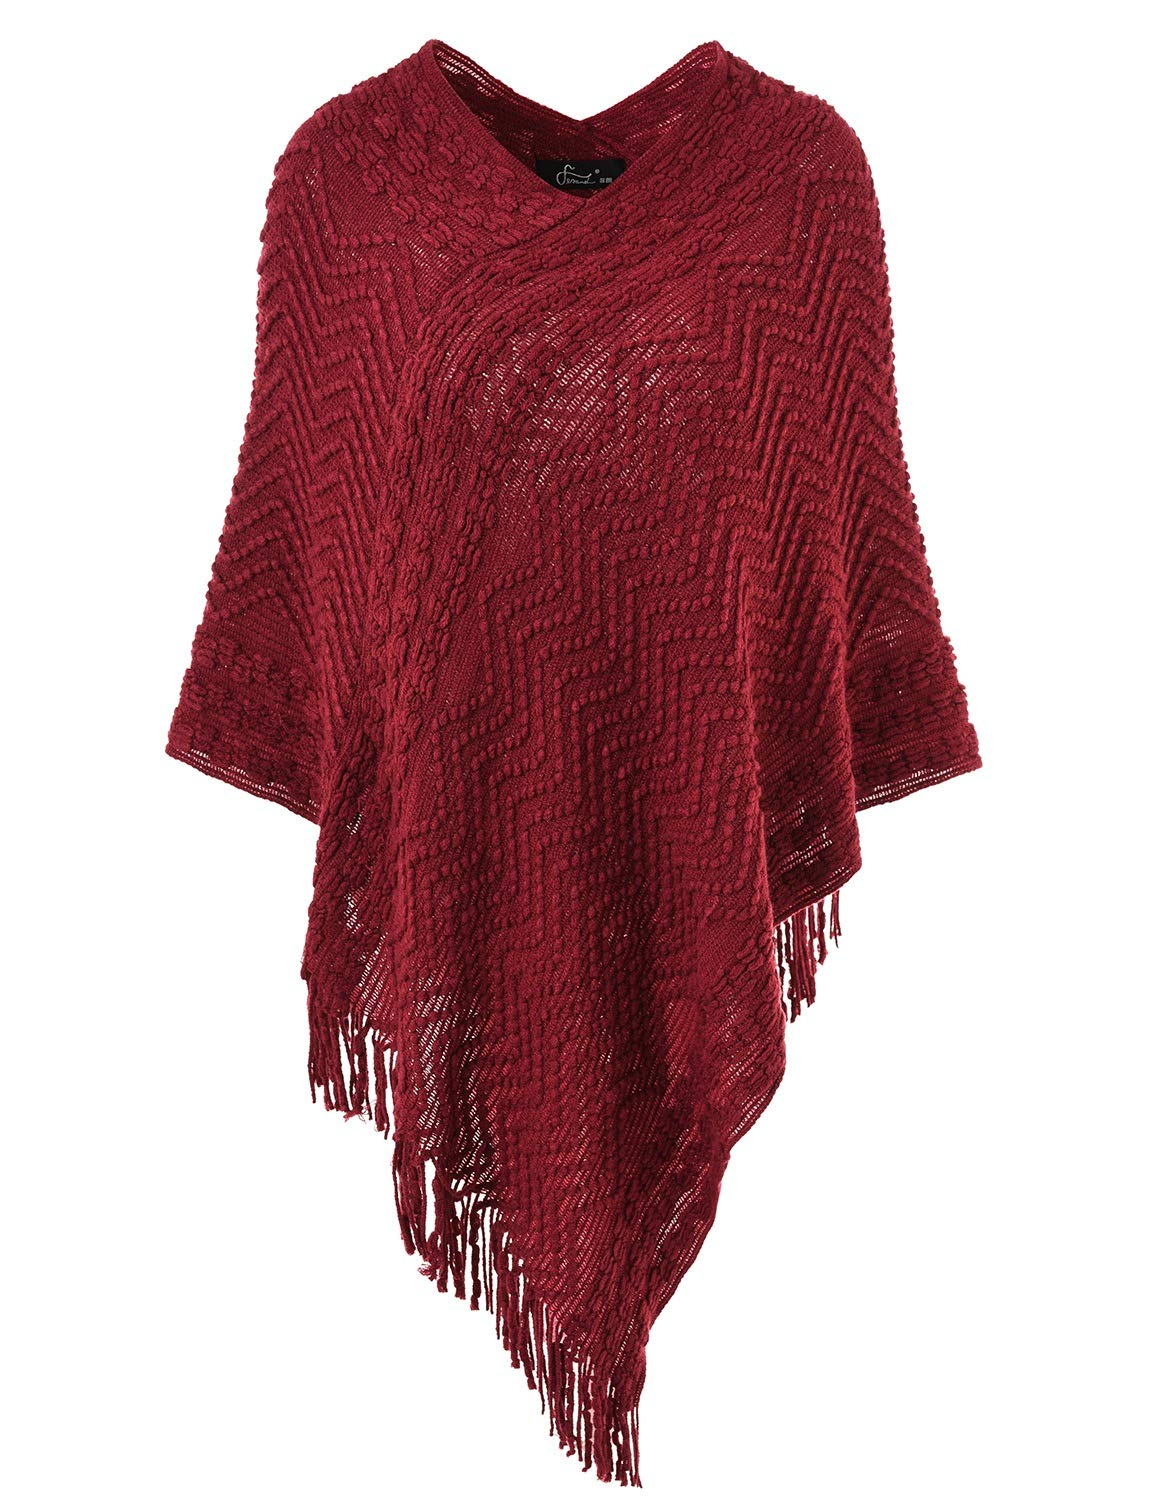 Ferand Women's Elegant Cozy Poncho Sweater with Chevron Stripes and Fringes, One Size, Burgundy